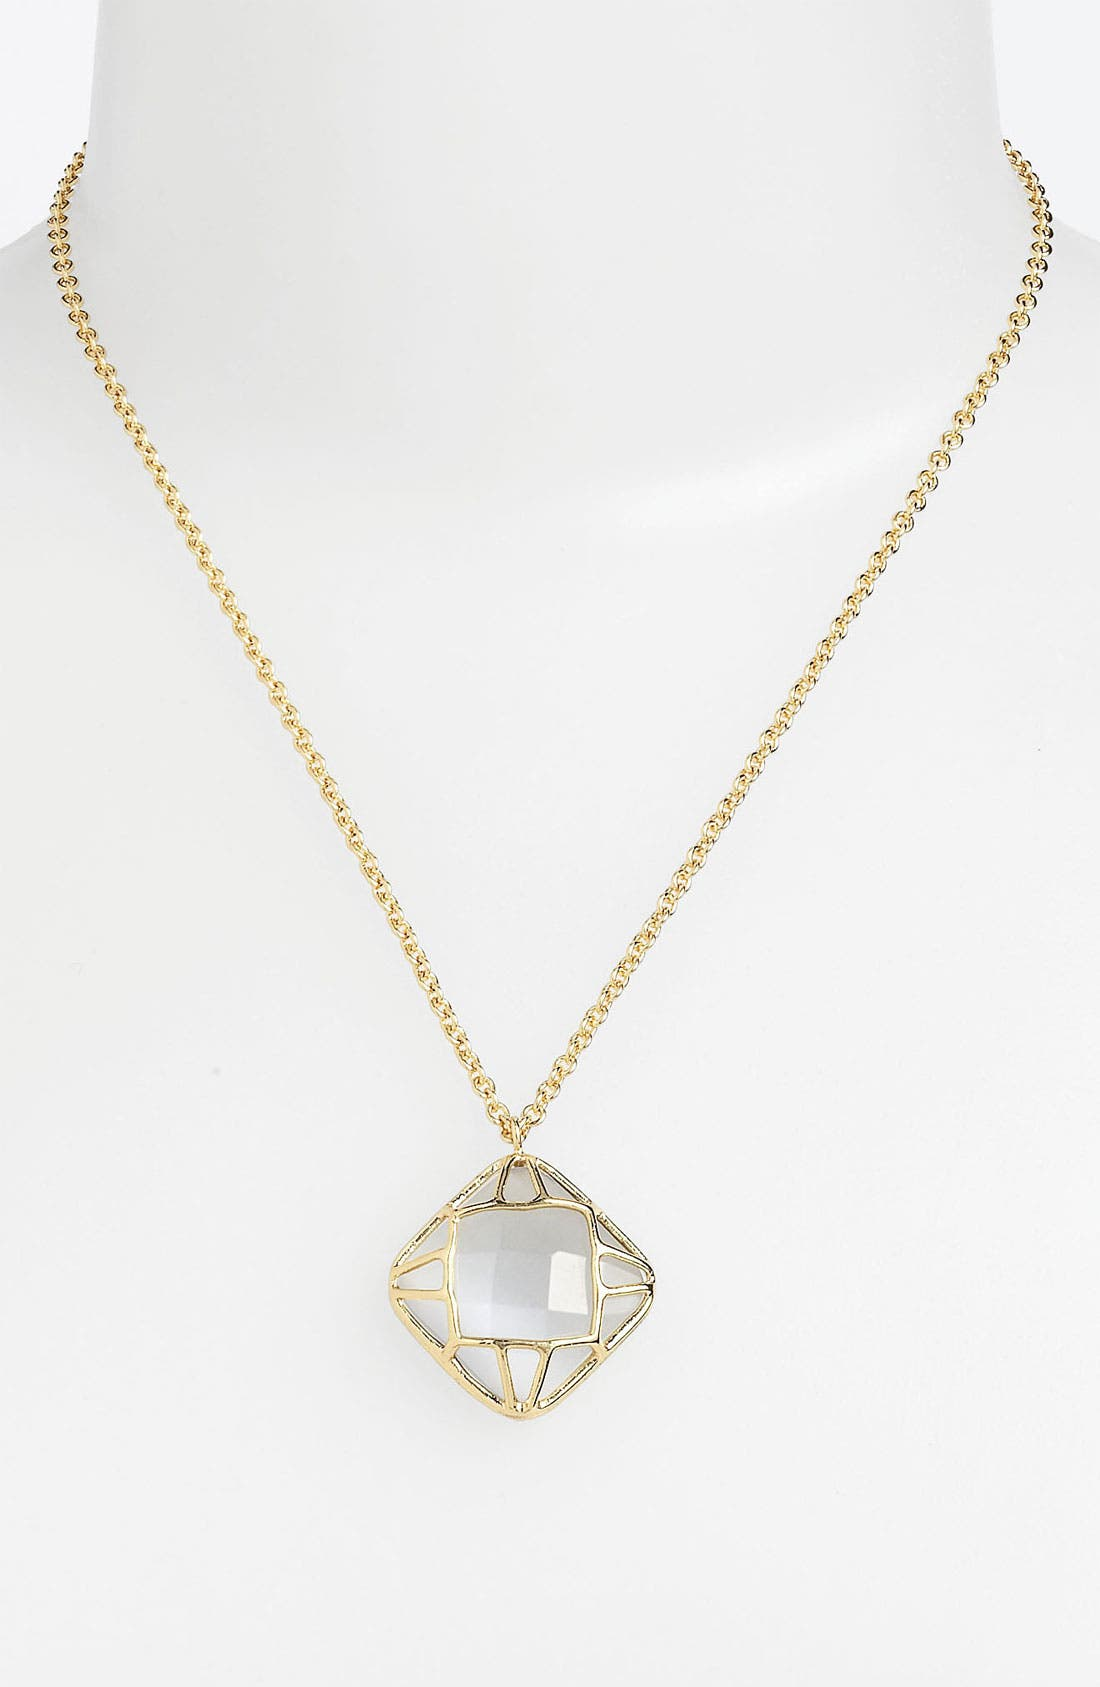 Main Image - Kendra Scott 'Jean' Pendant Necklace